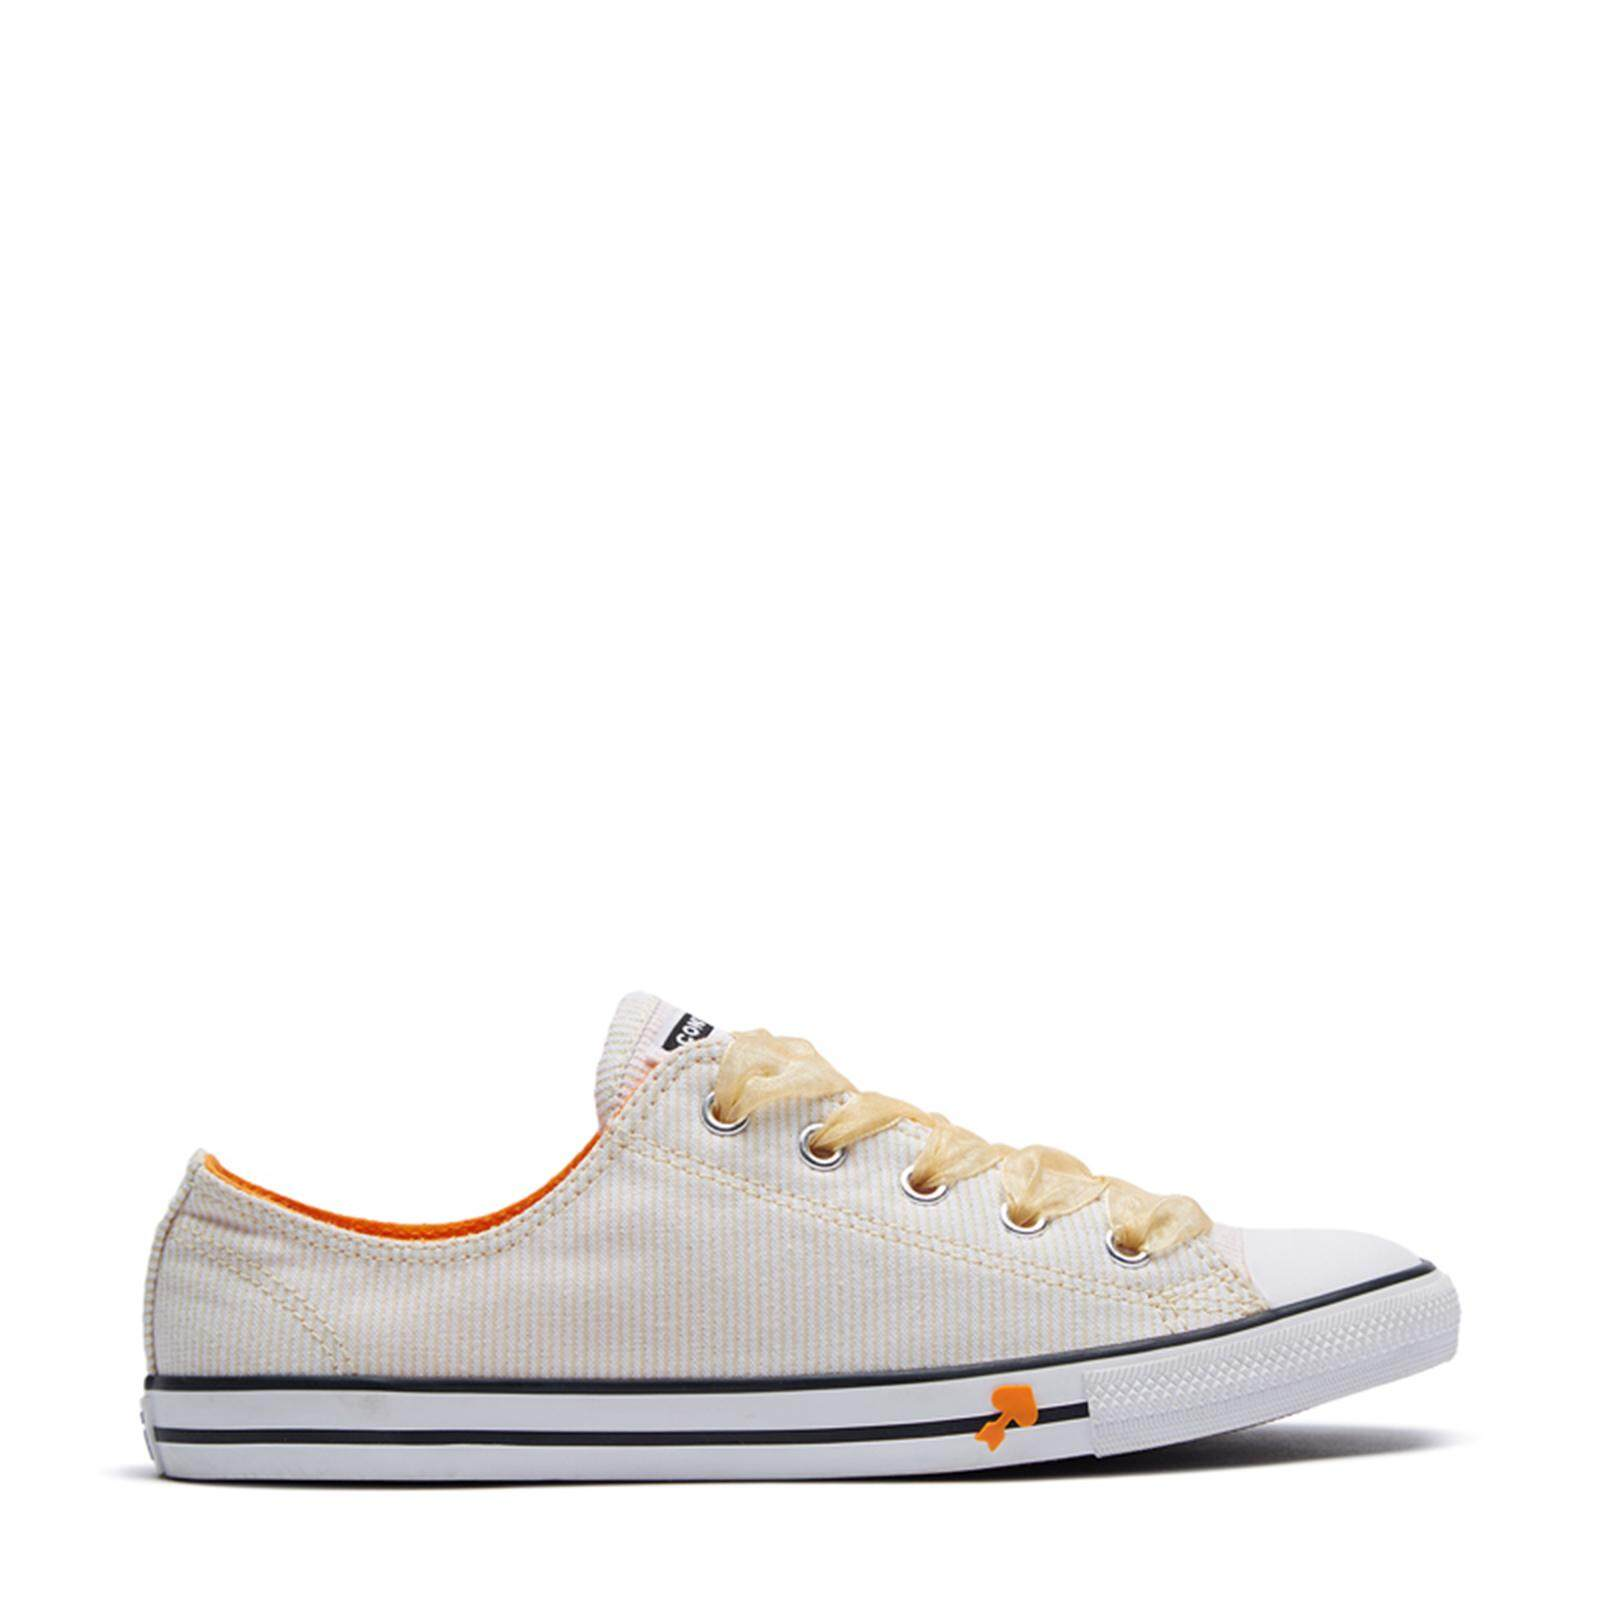 สุโขทัย CONVERSE CHUCK TAYLOR AS DAINTY - OX - WOMEN - 564613C